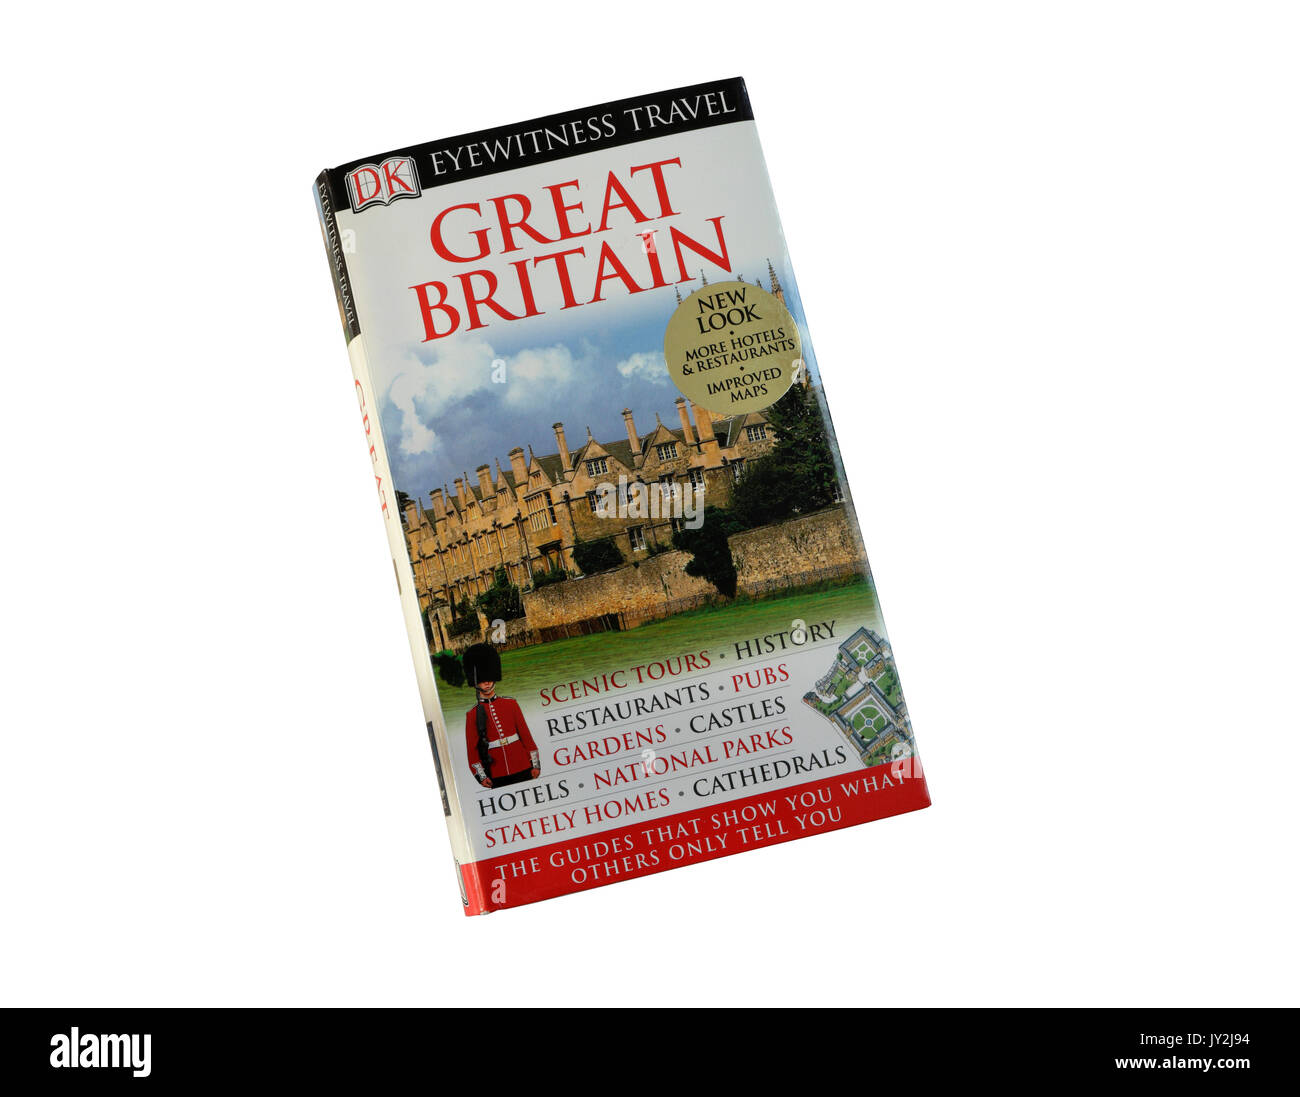 DK Tourist guide to Great Britain - Stock Image